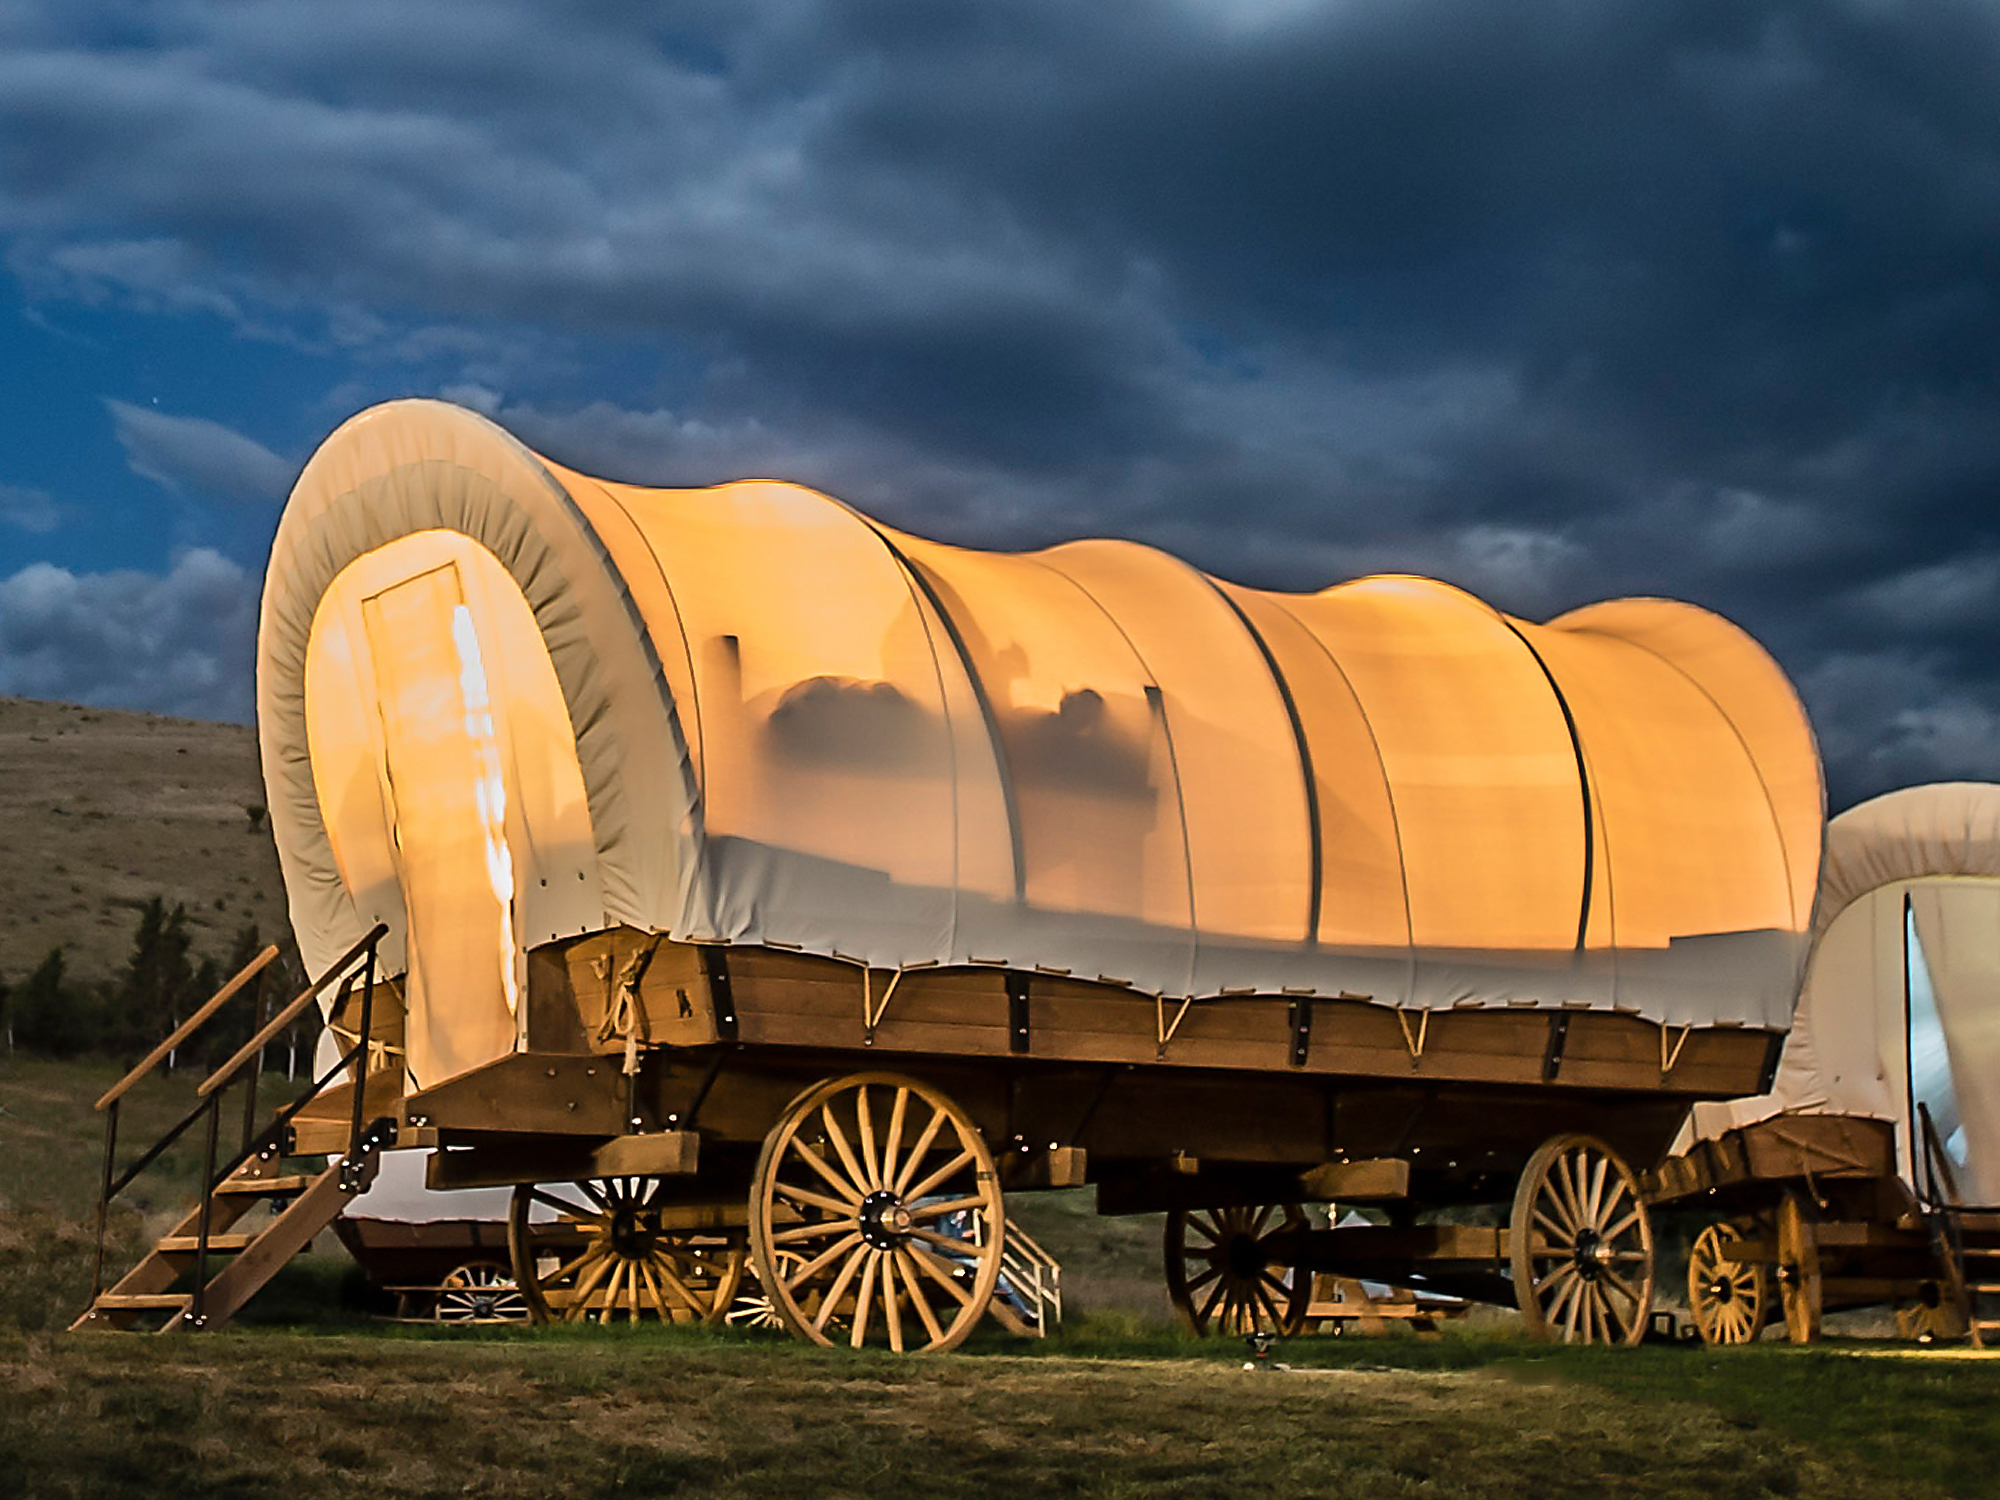 Conestoga wagon at Yosemite Pines RV Resort and Family Lodging